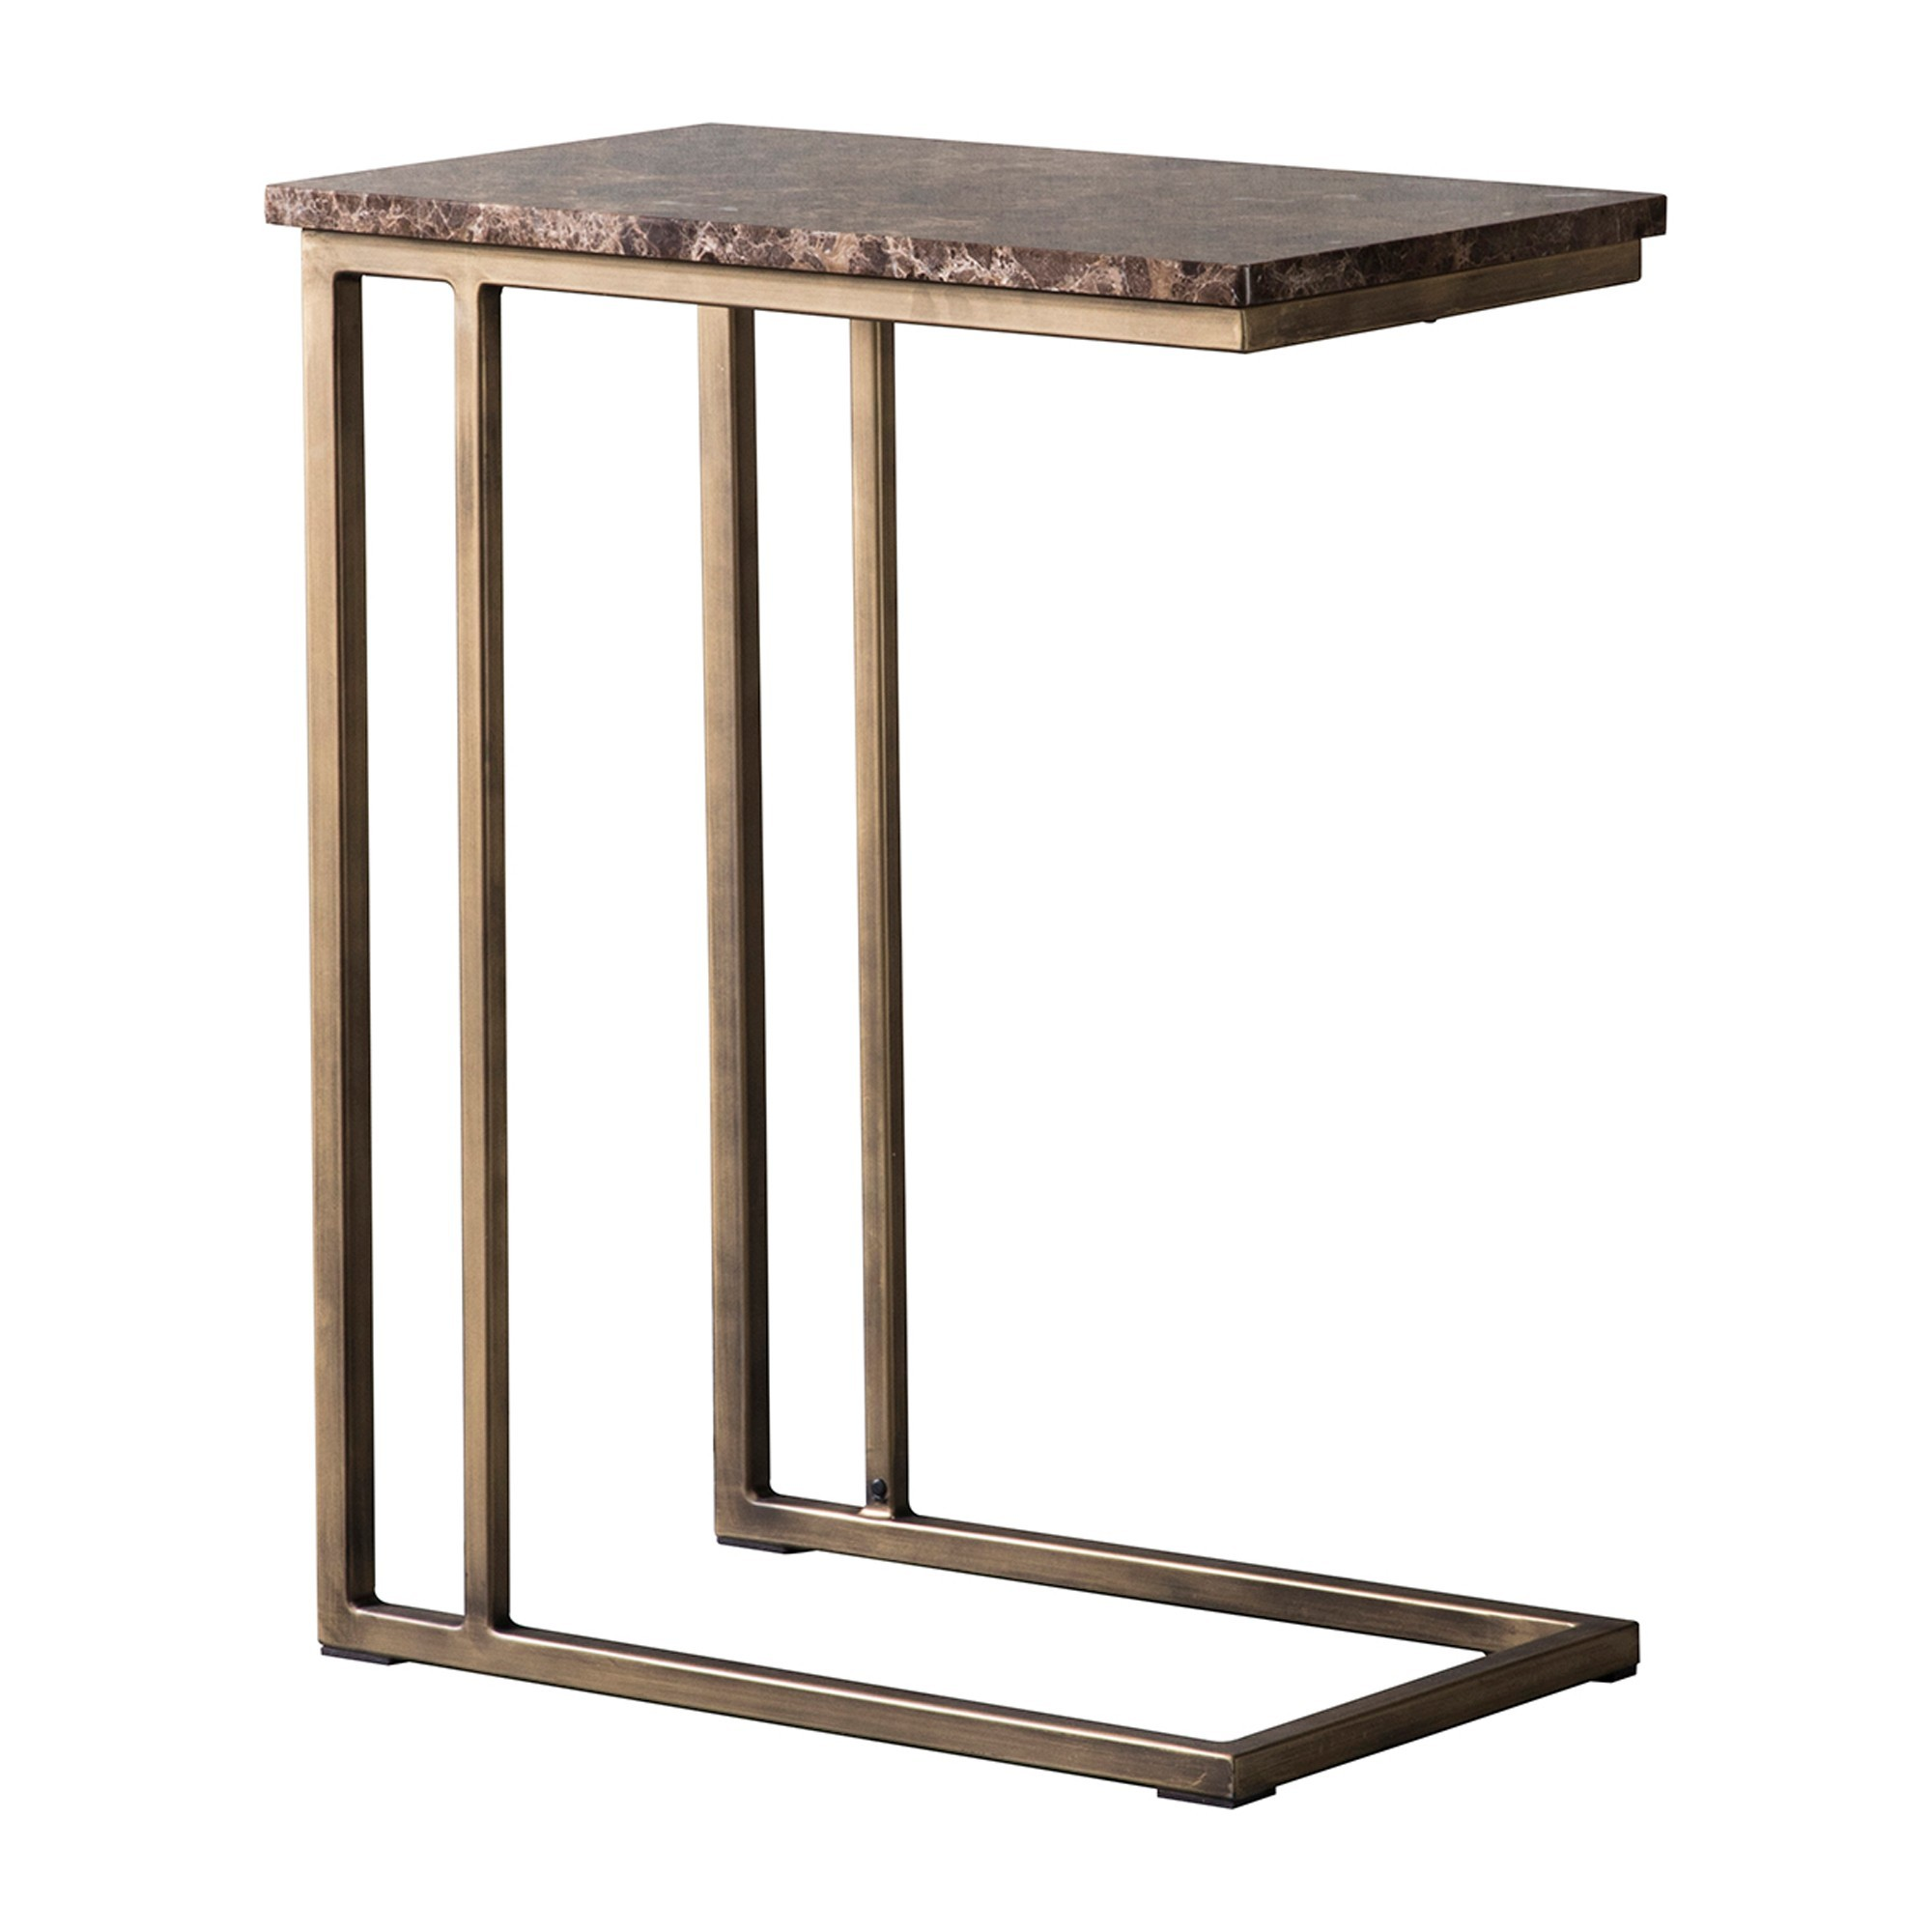 Emperor Marble Top C-shape Table, Brown / Brass